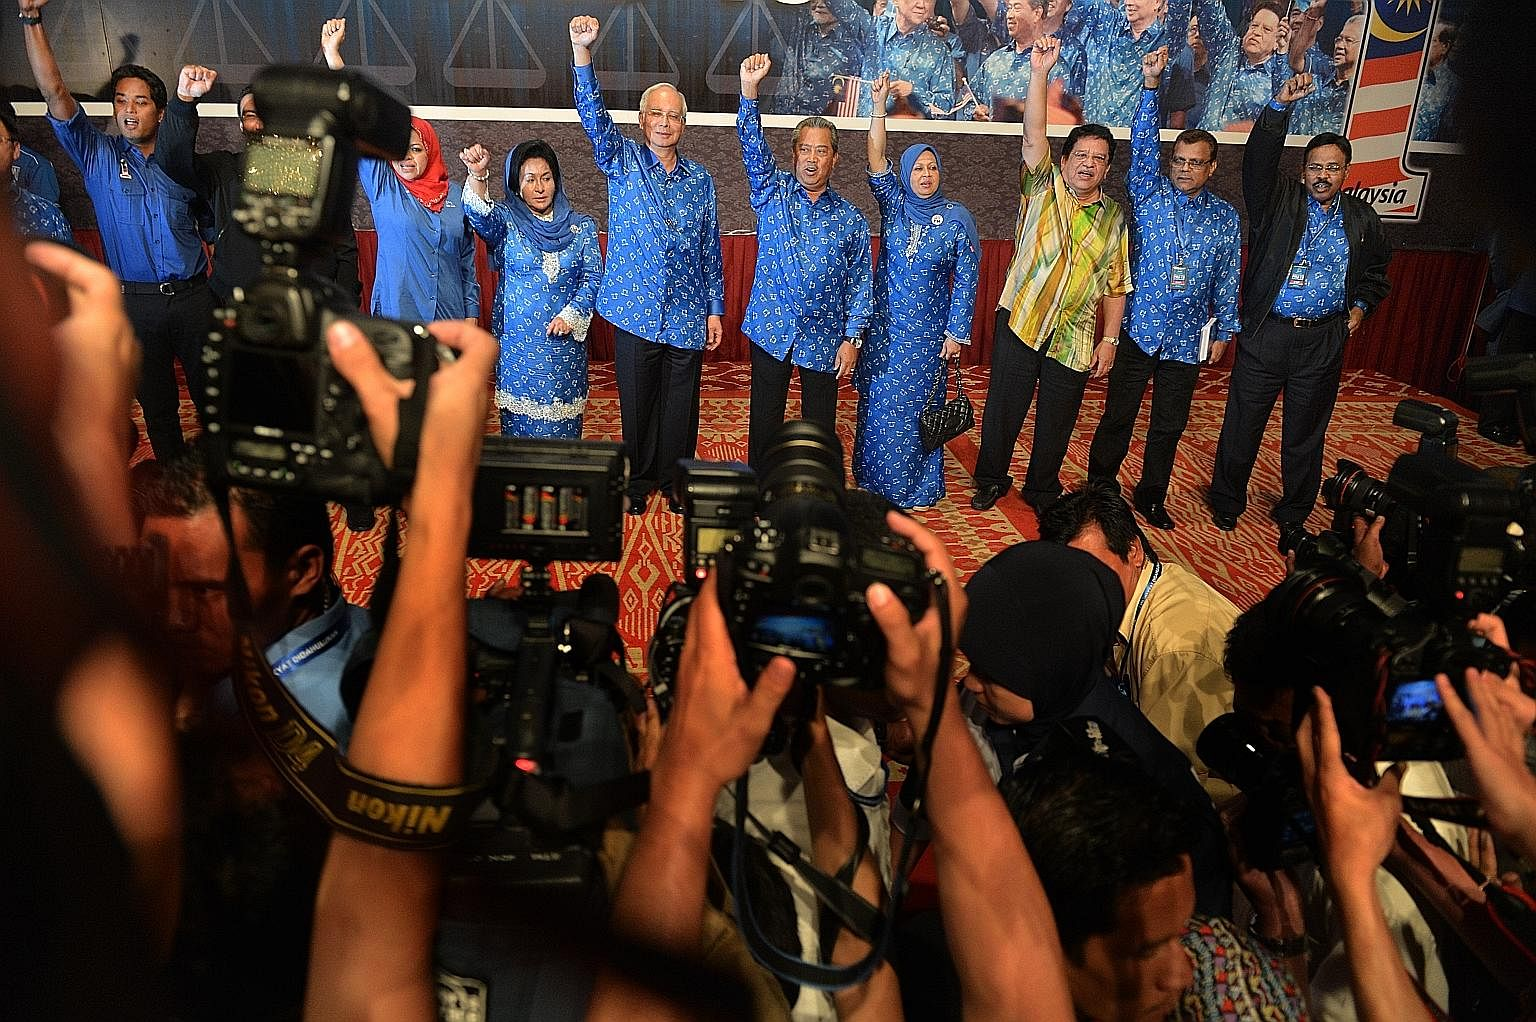 Mr Najib (centre) and his fellow BN members celebrating their election victory on May 6, 2013. The next general election is not due until August 2018, but rumours of early elections persist.